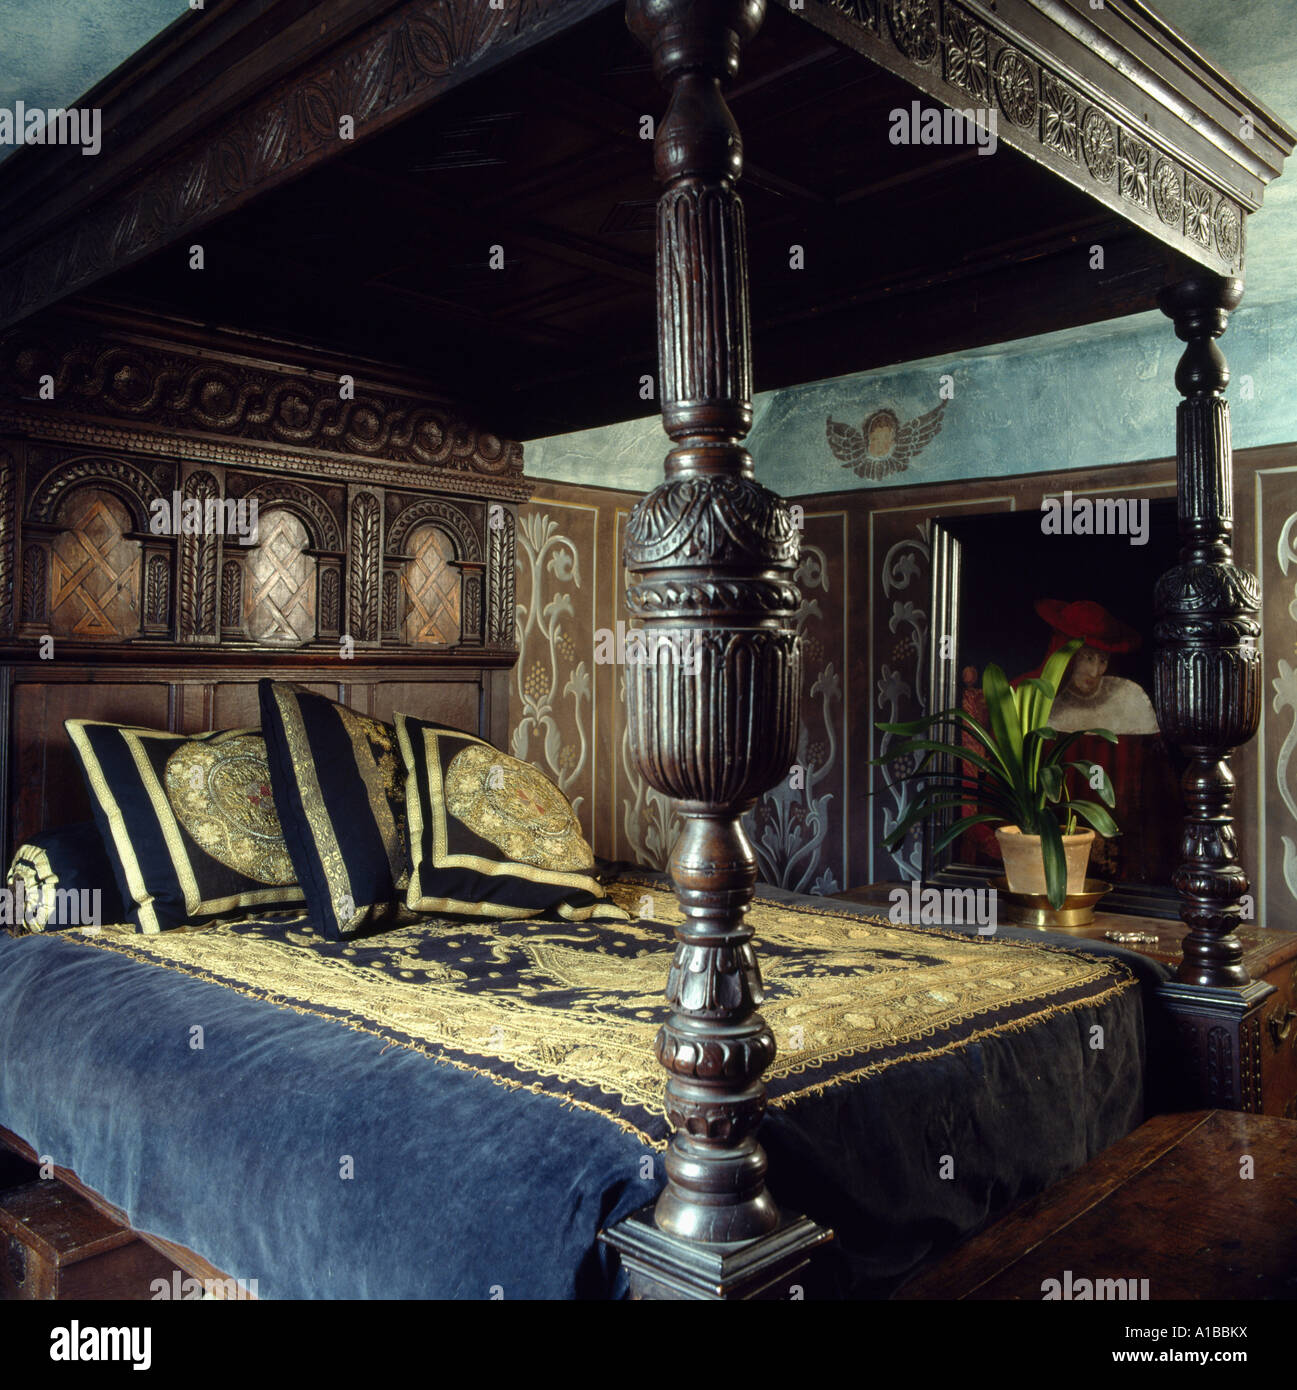 antique 4 poster bed Antique 4 poster bed with gold embroidered blue velvet bedspread  antique 4 poster bed